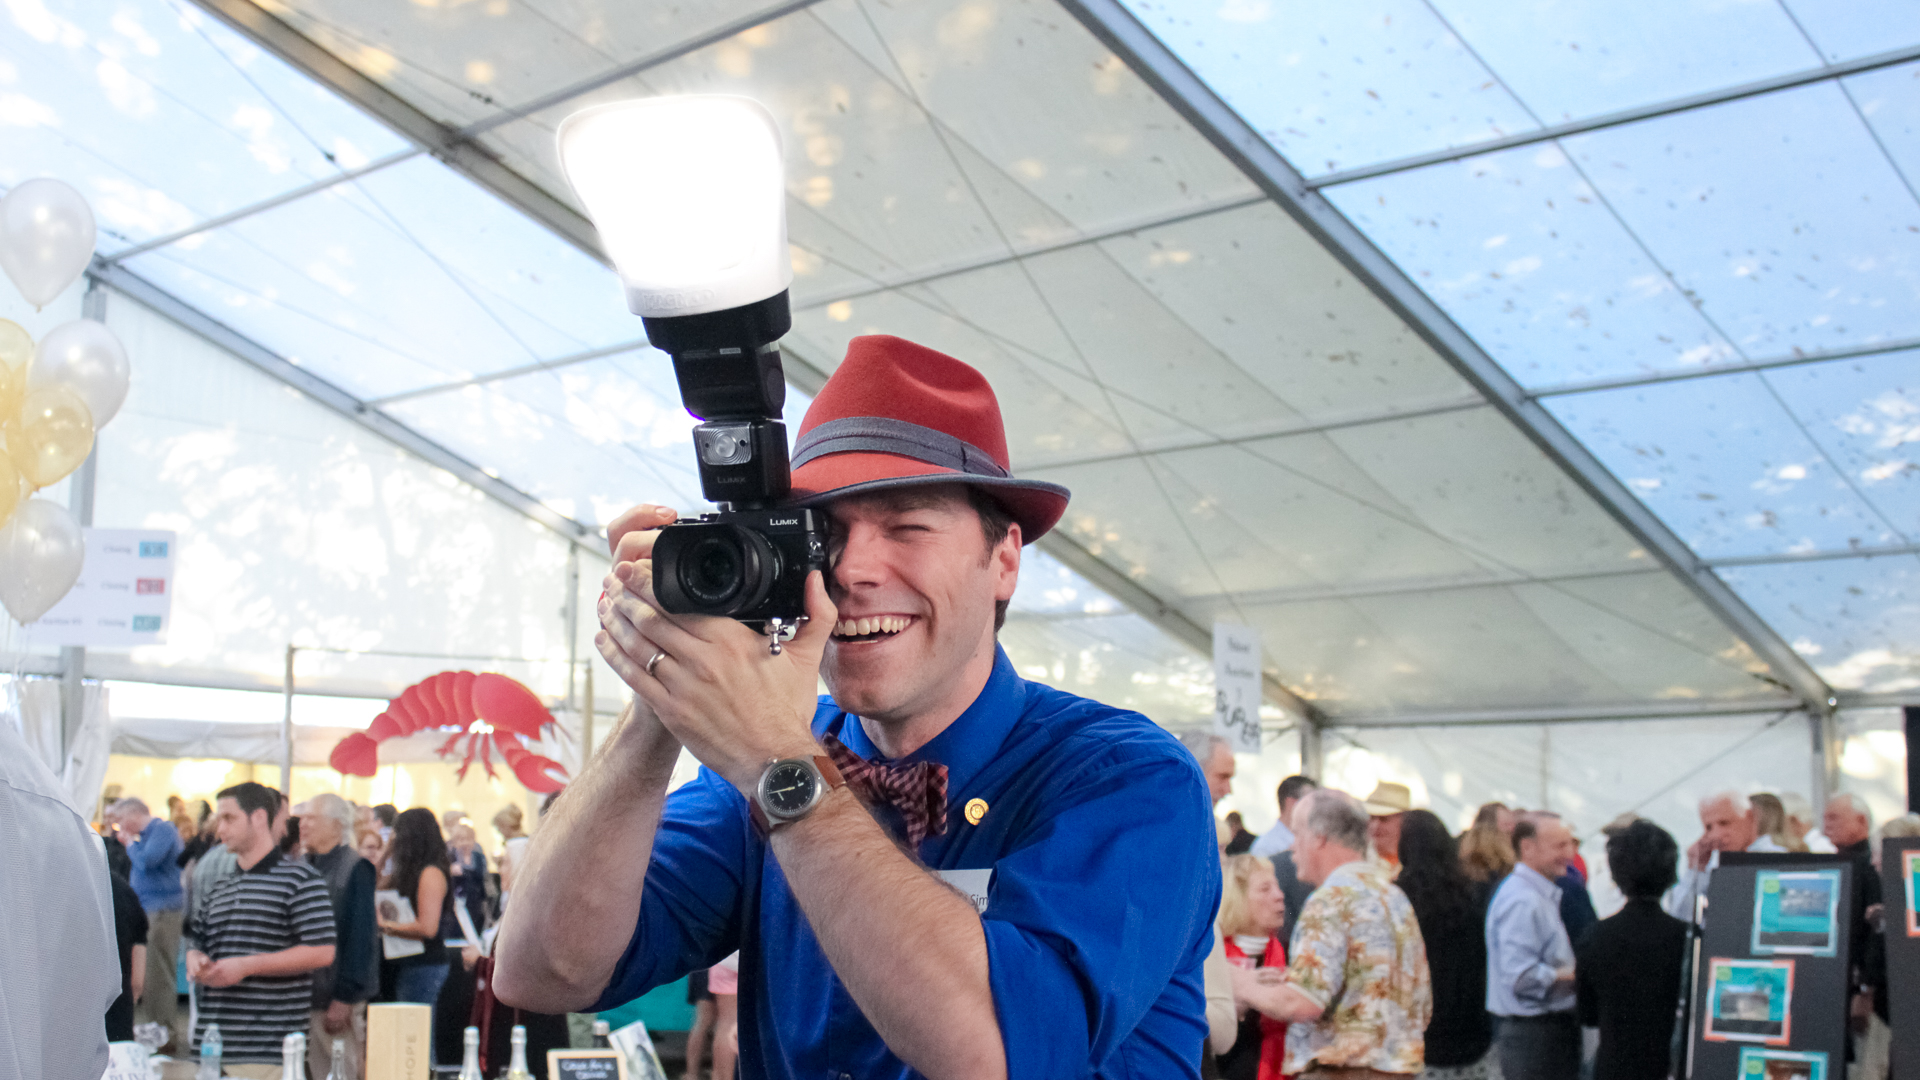 How to Use On-Camera Flash for Events | Photofocus